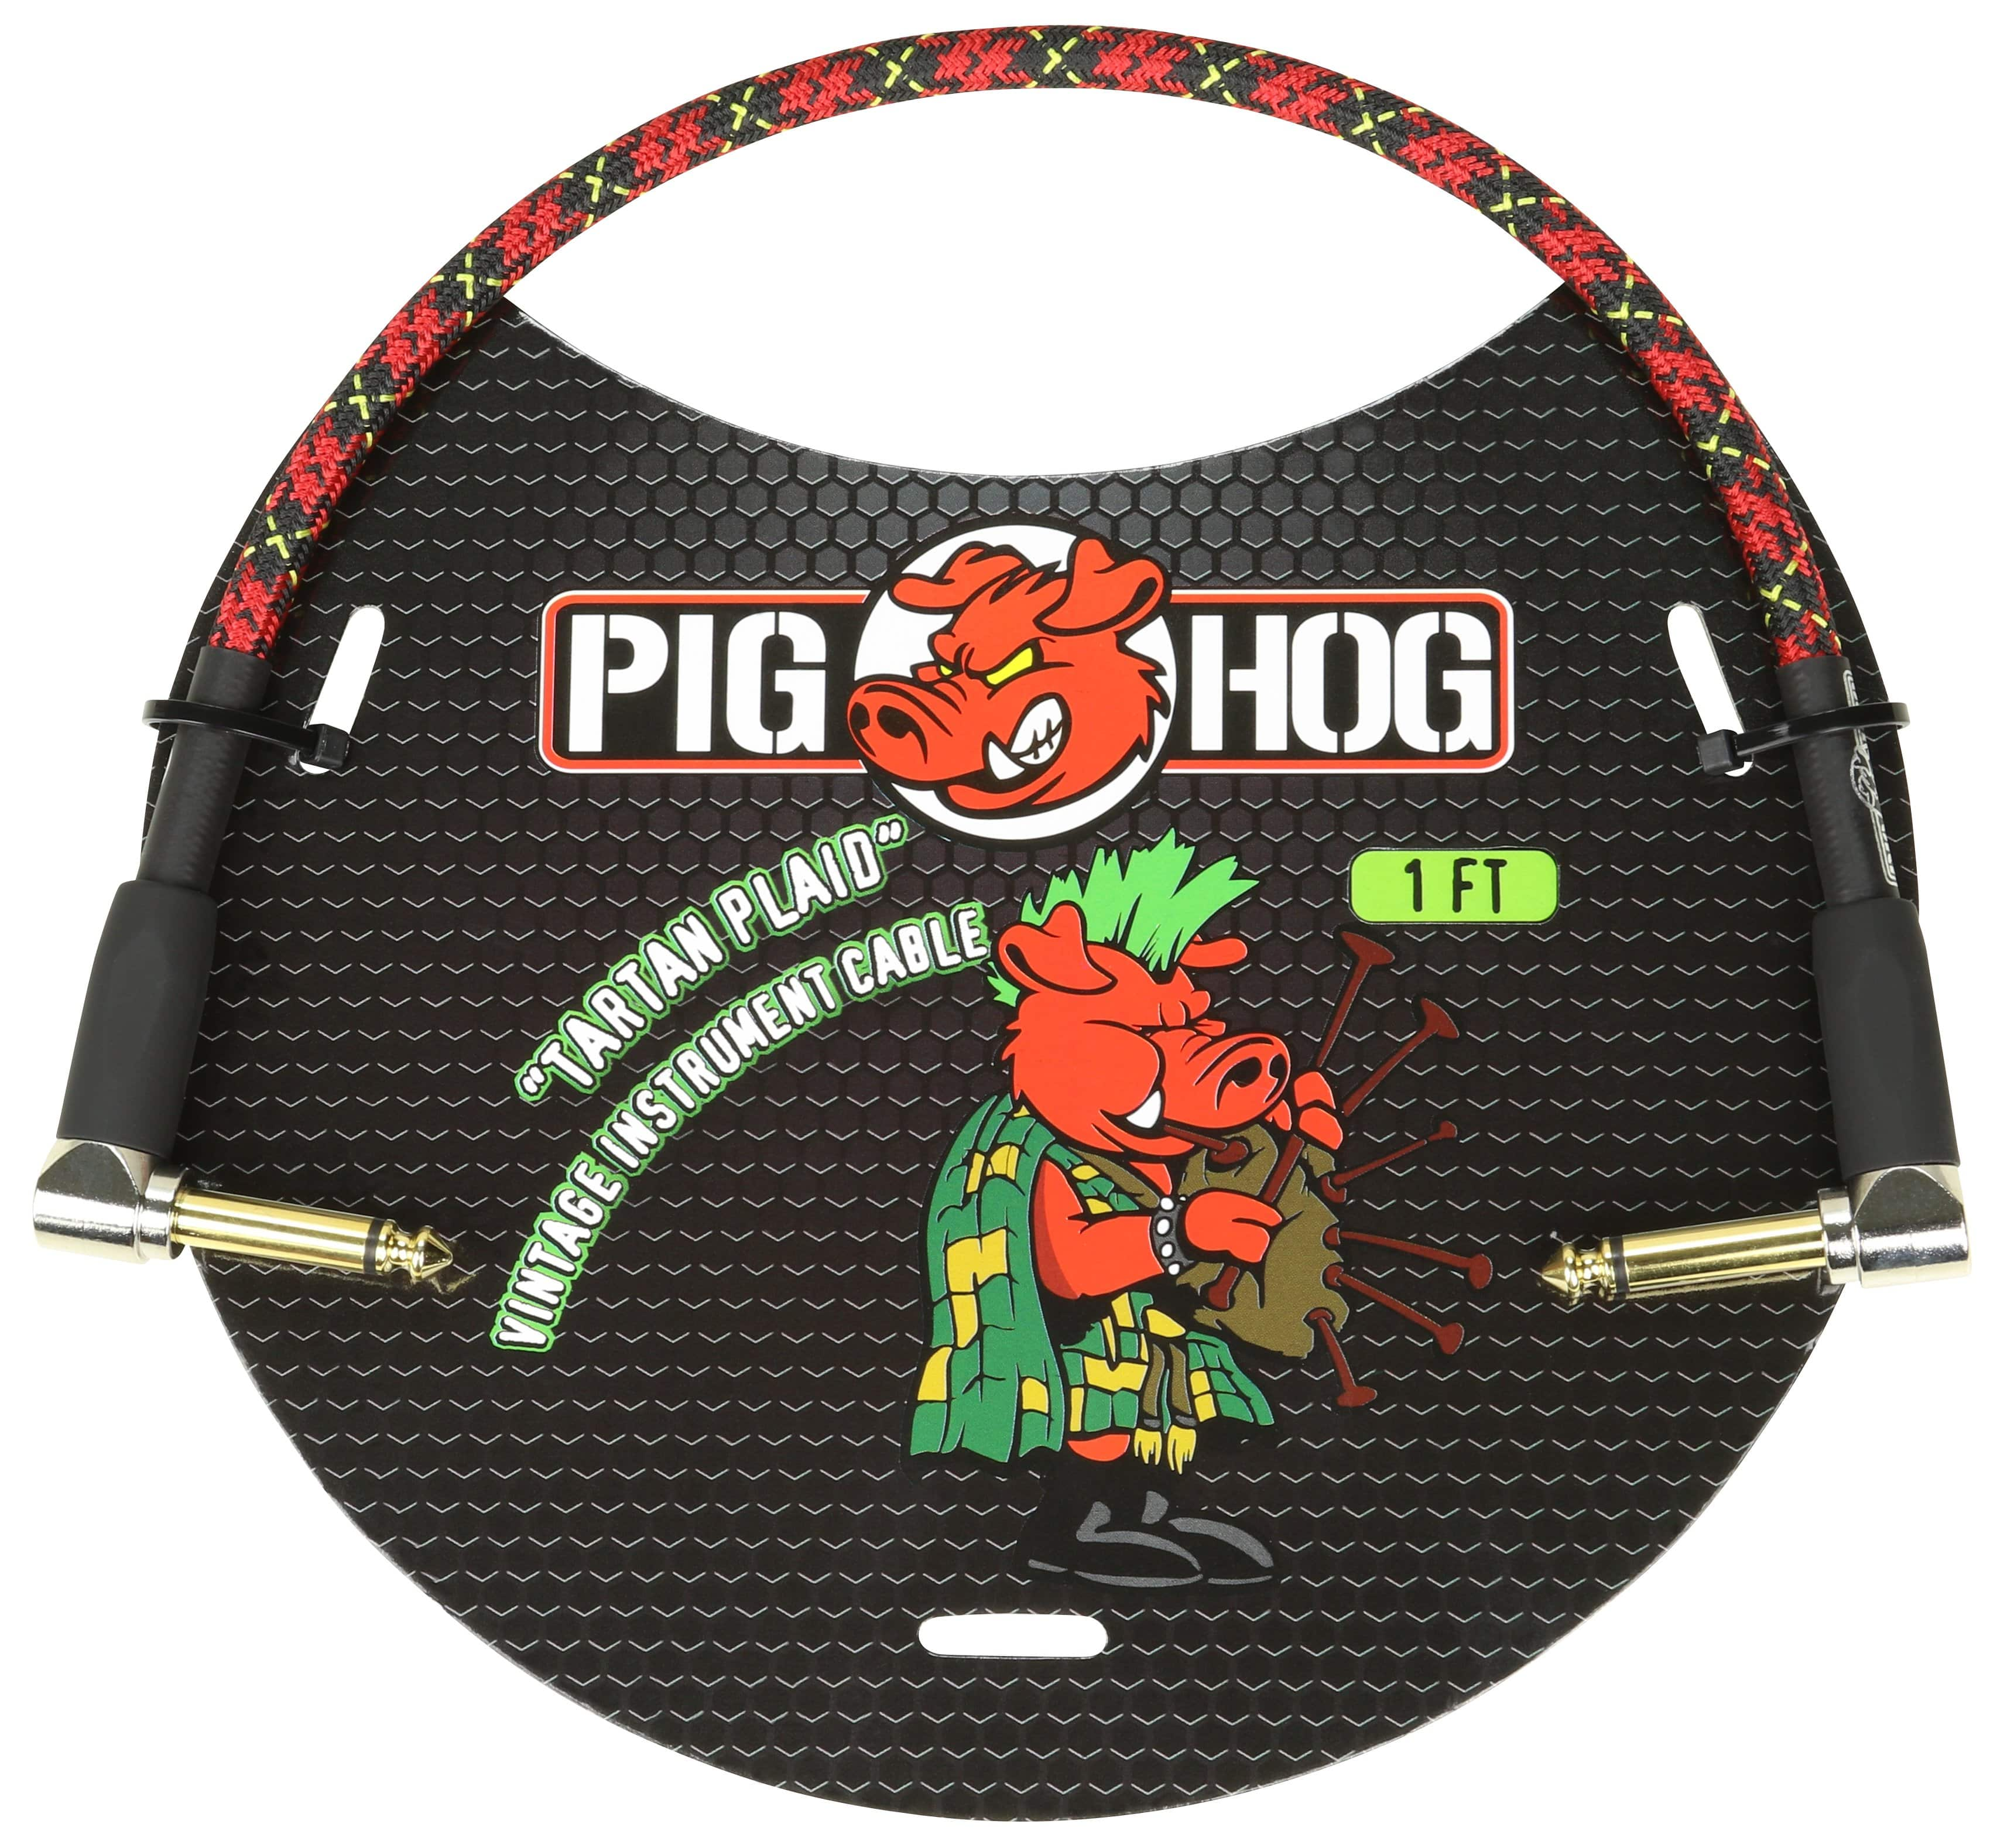 "PIG HOG PATCH CABLES Pig Hog 1/4"" Tartan Plaid Tweed Guitar 1ft Right-Angled Patch Cables 1/4"" NEW"